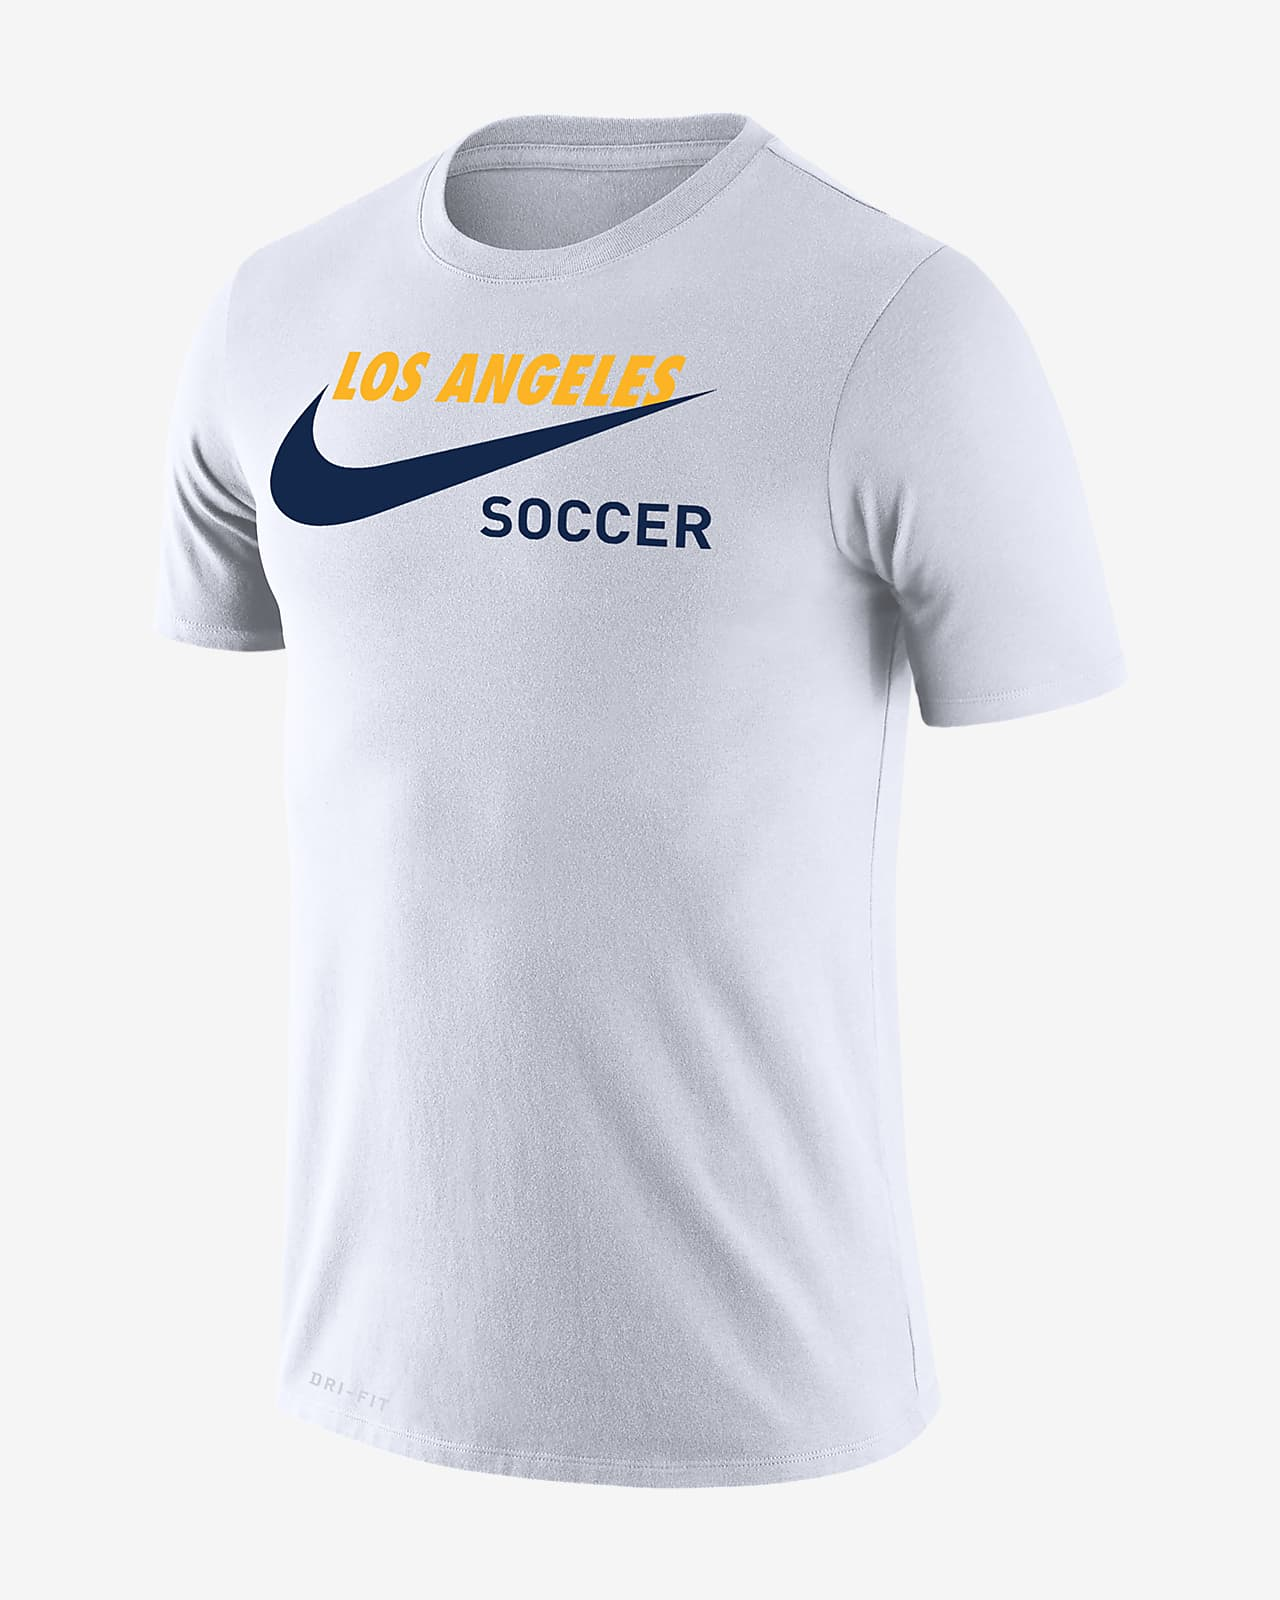 Nike LA Men's Soccer T-Shirt